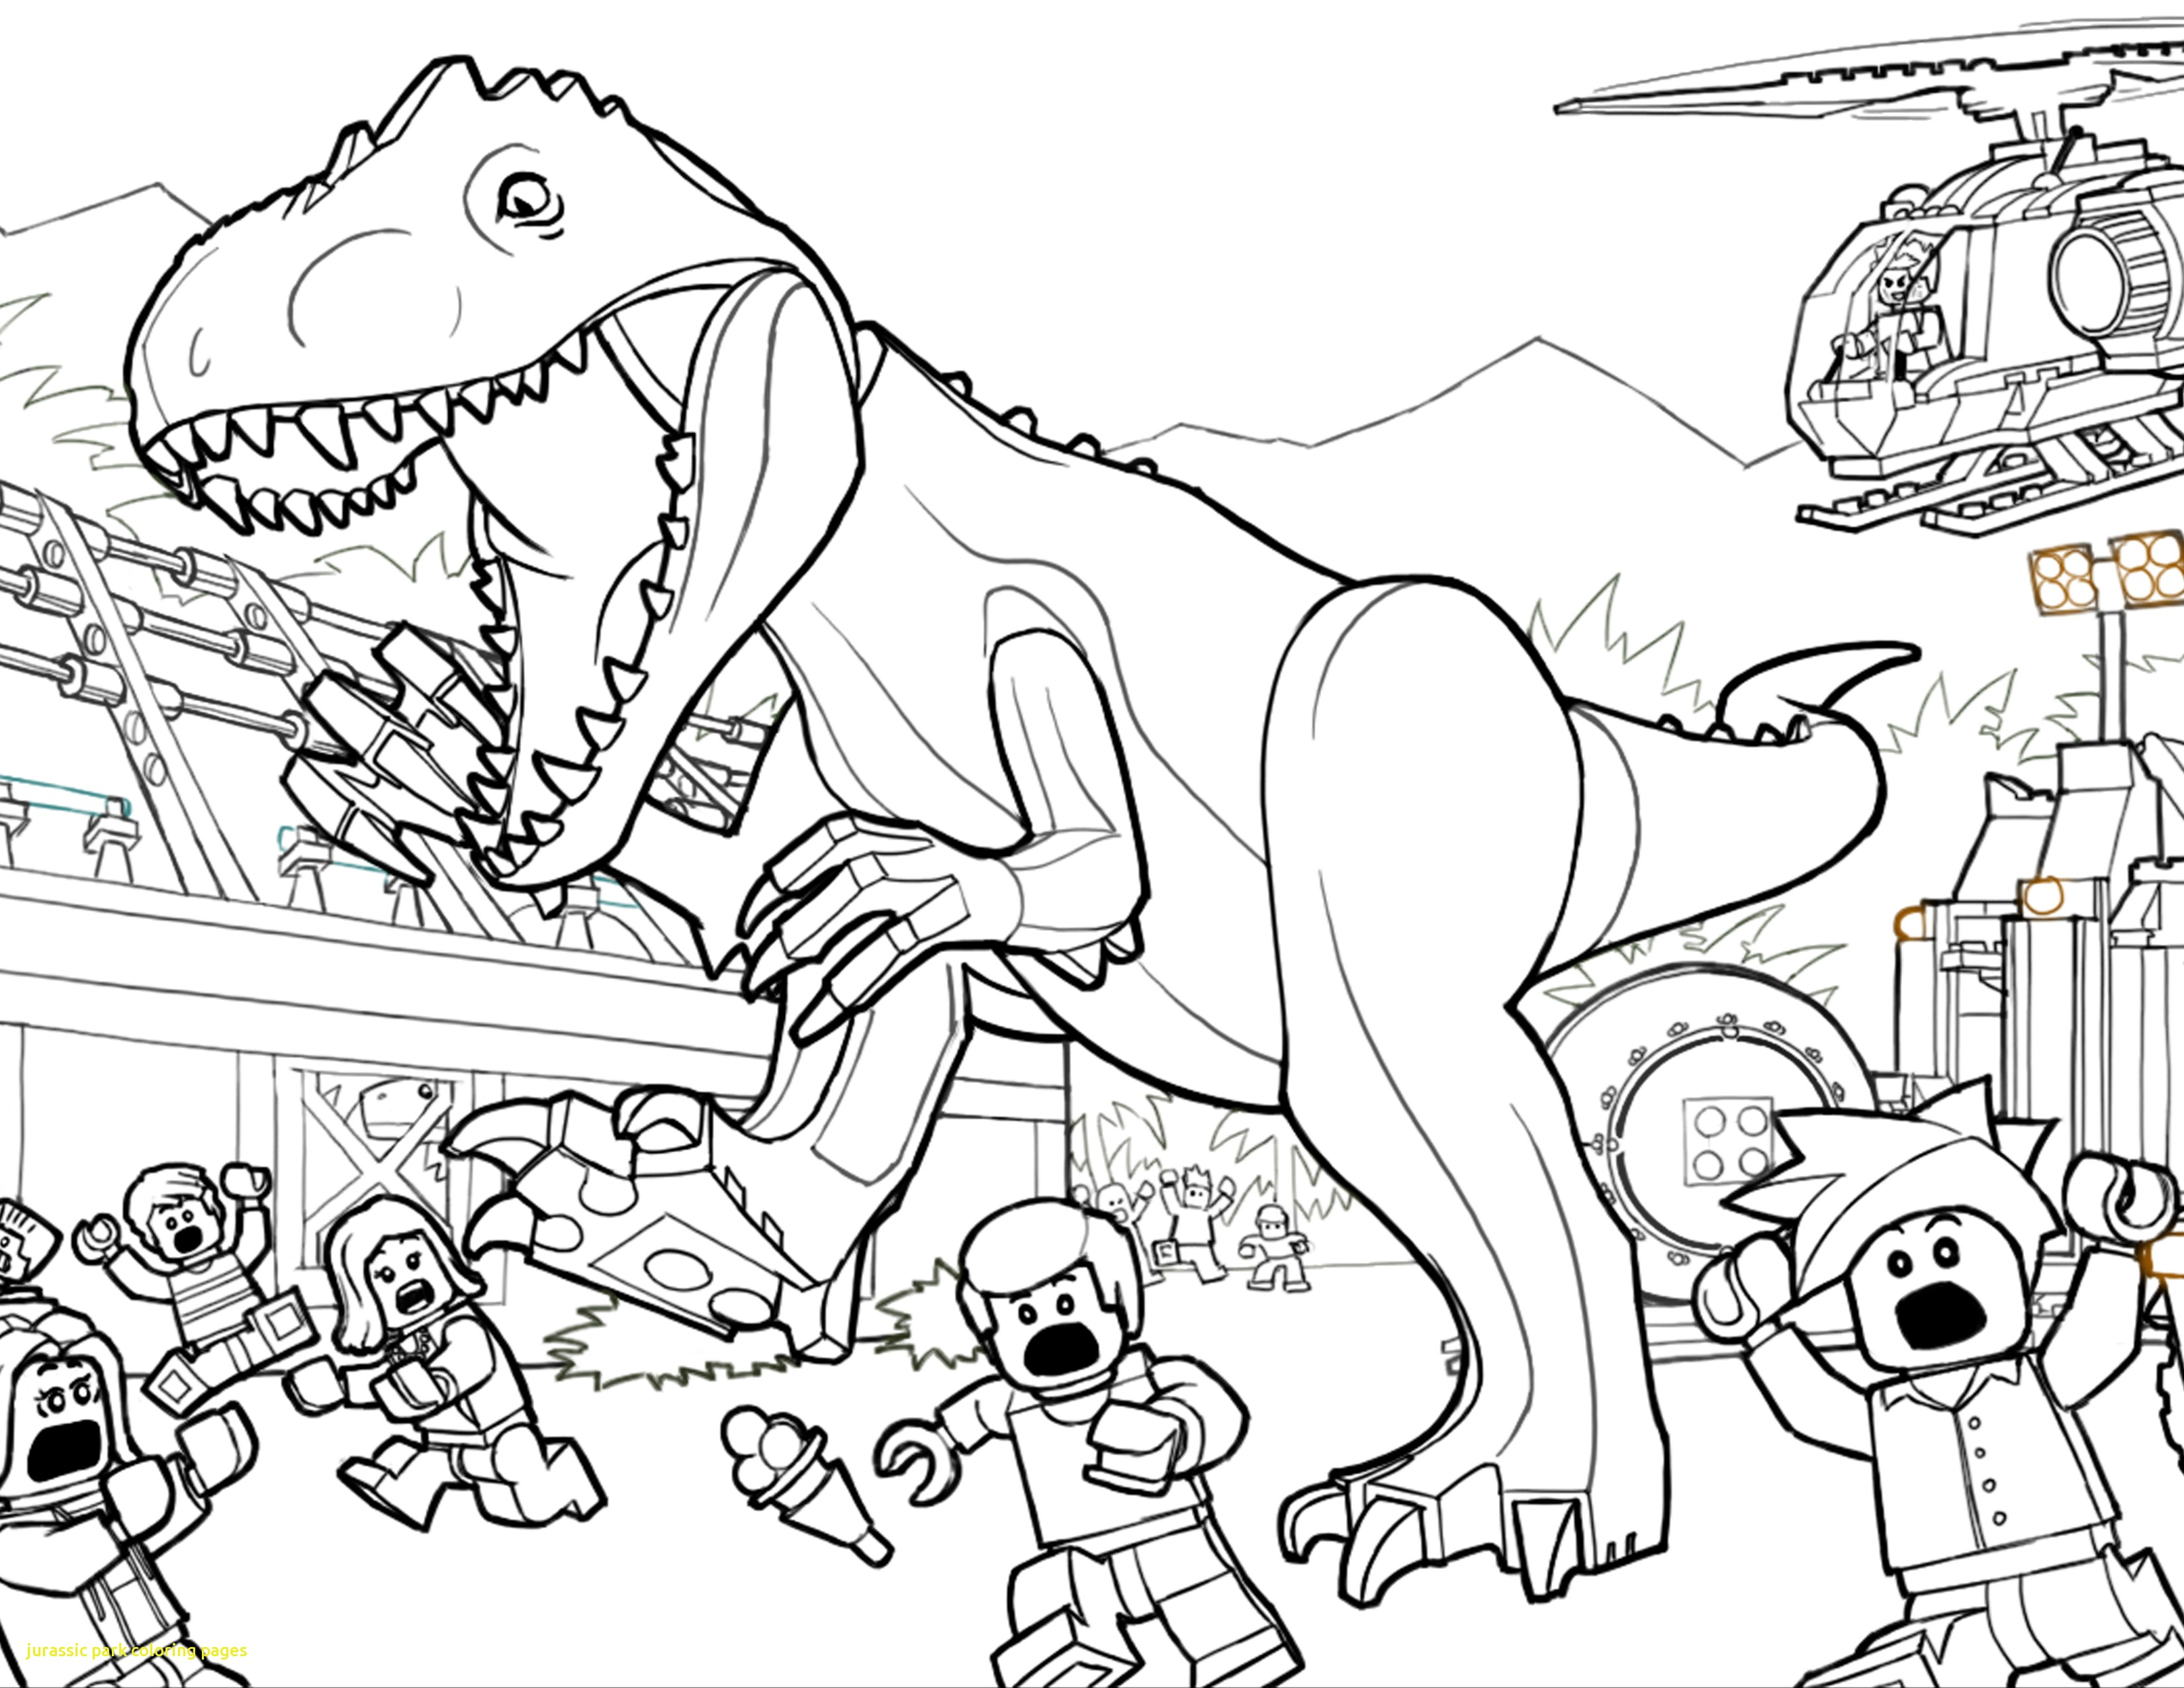 3300x2550 Jurassic Park Coloring Pages With Jurassic Park Coloring Pages